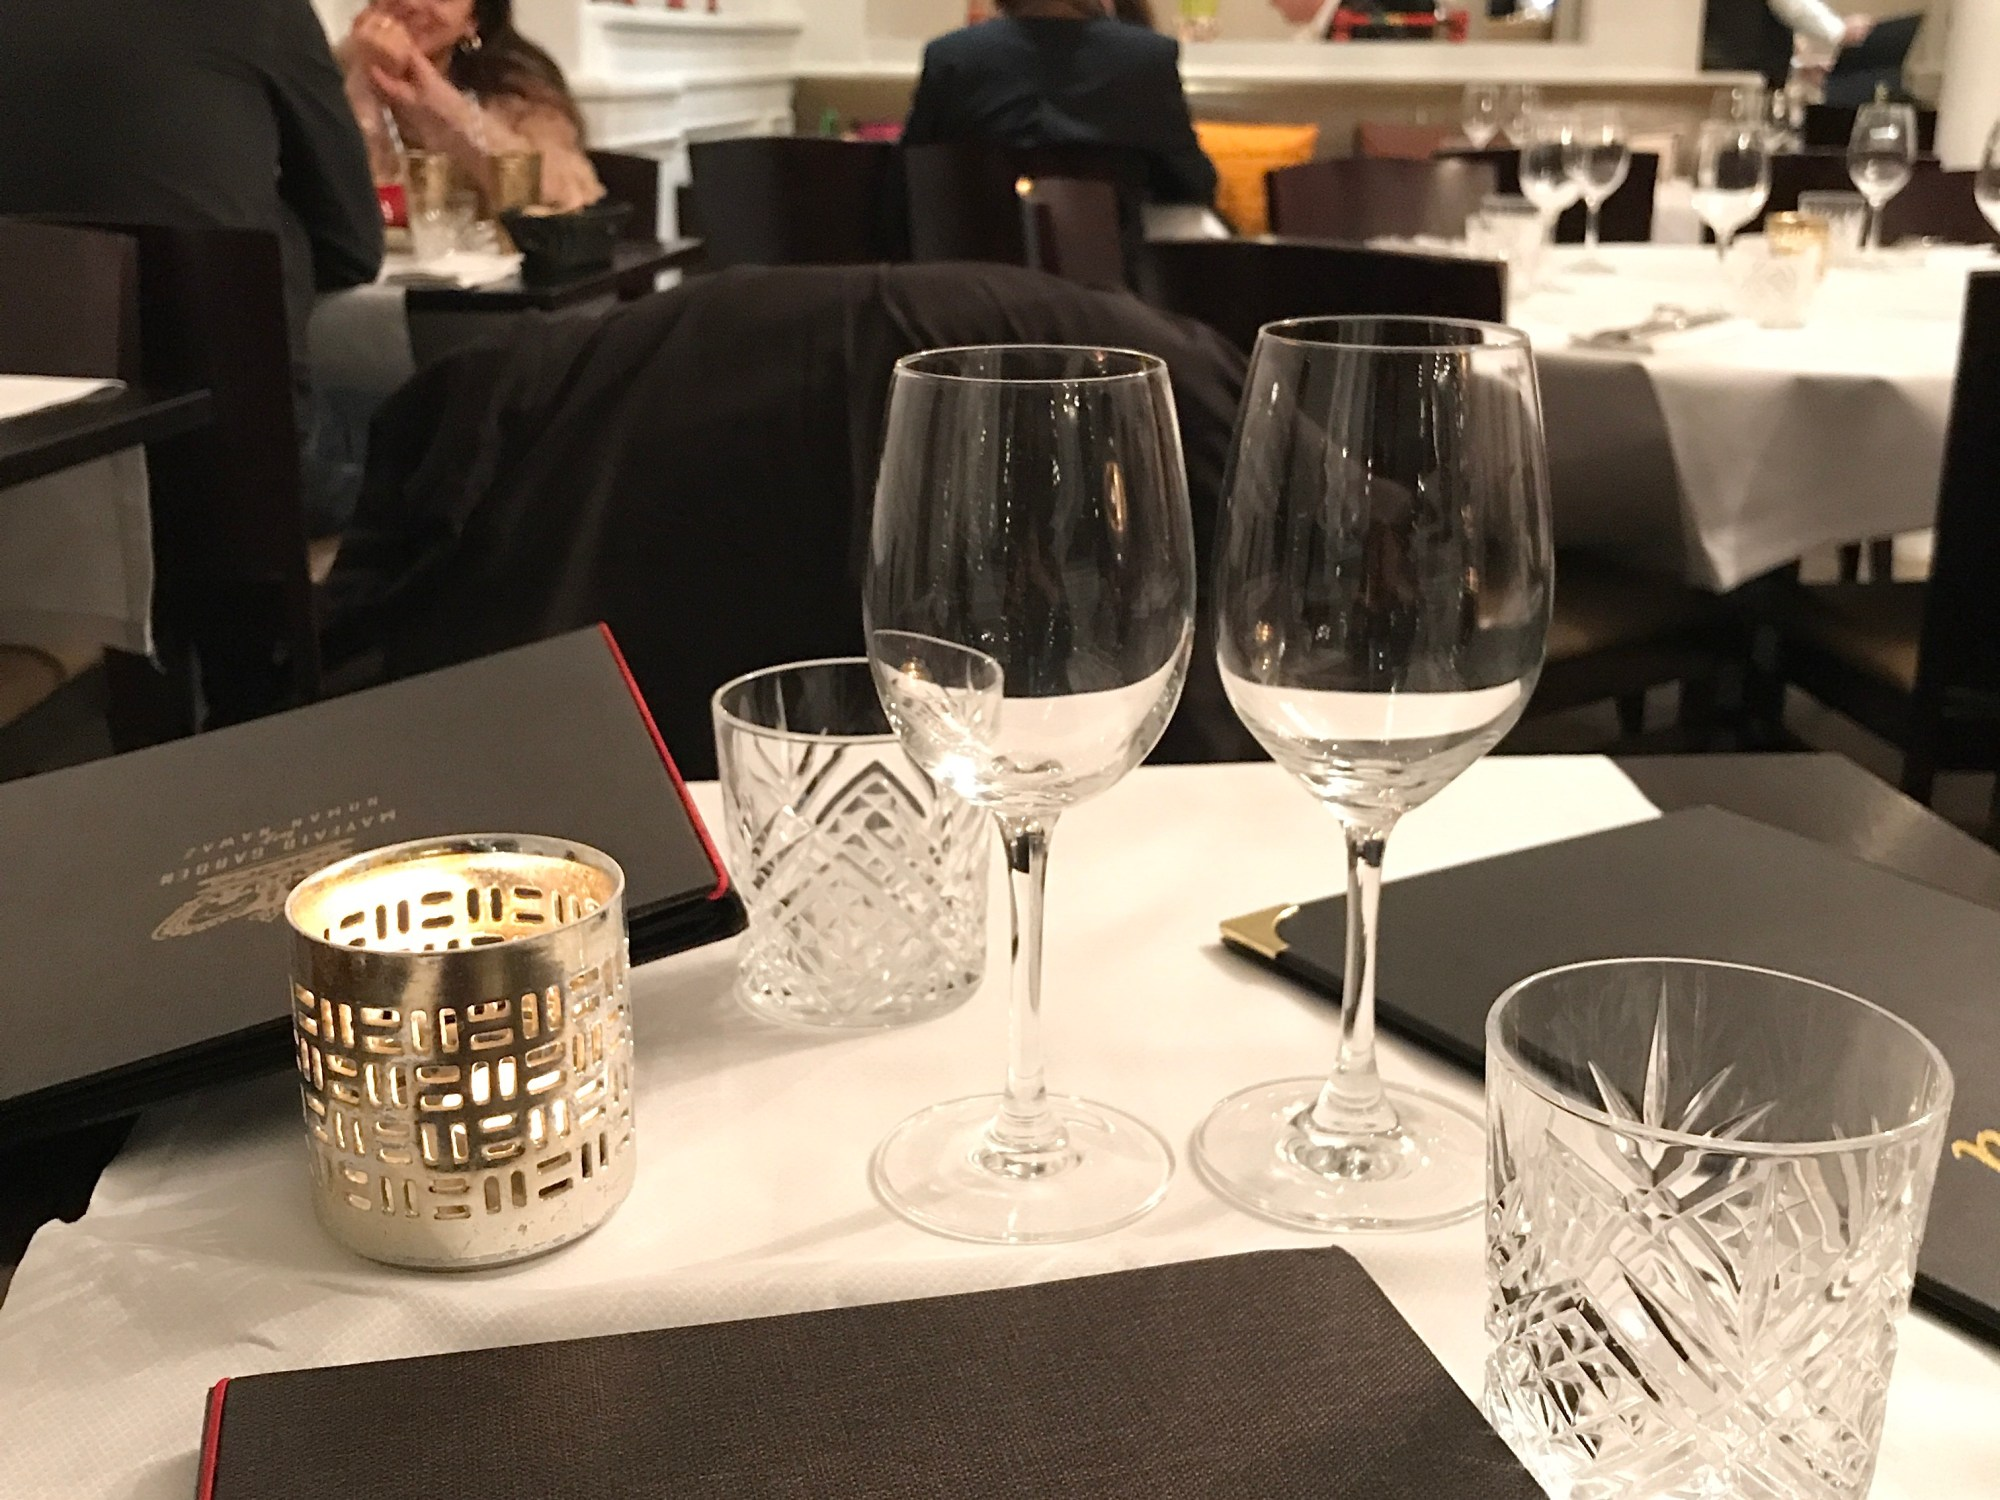 A table for two with elegant wine glasses and two menus